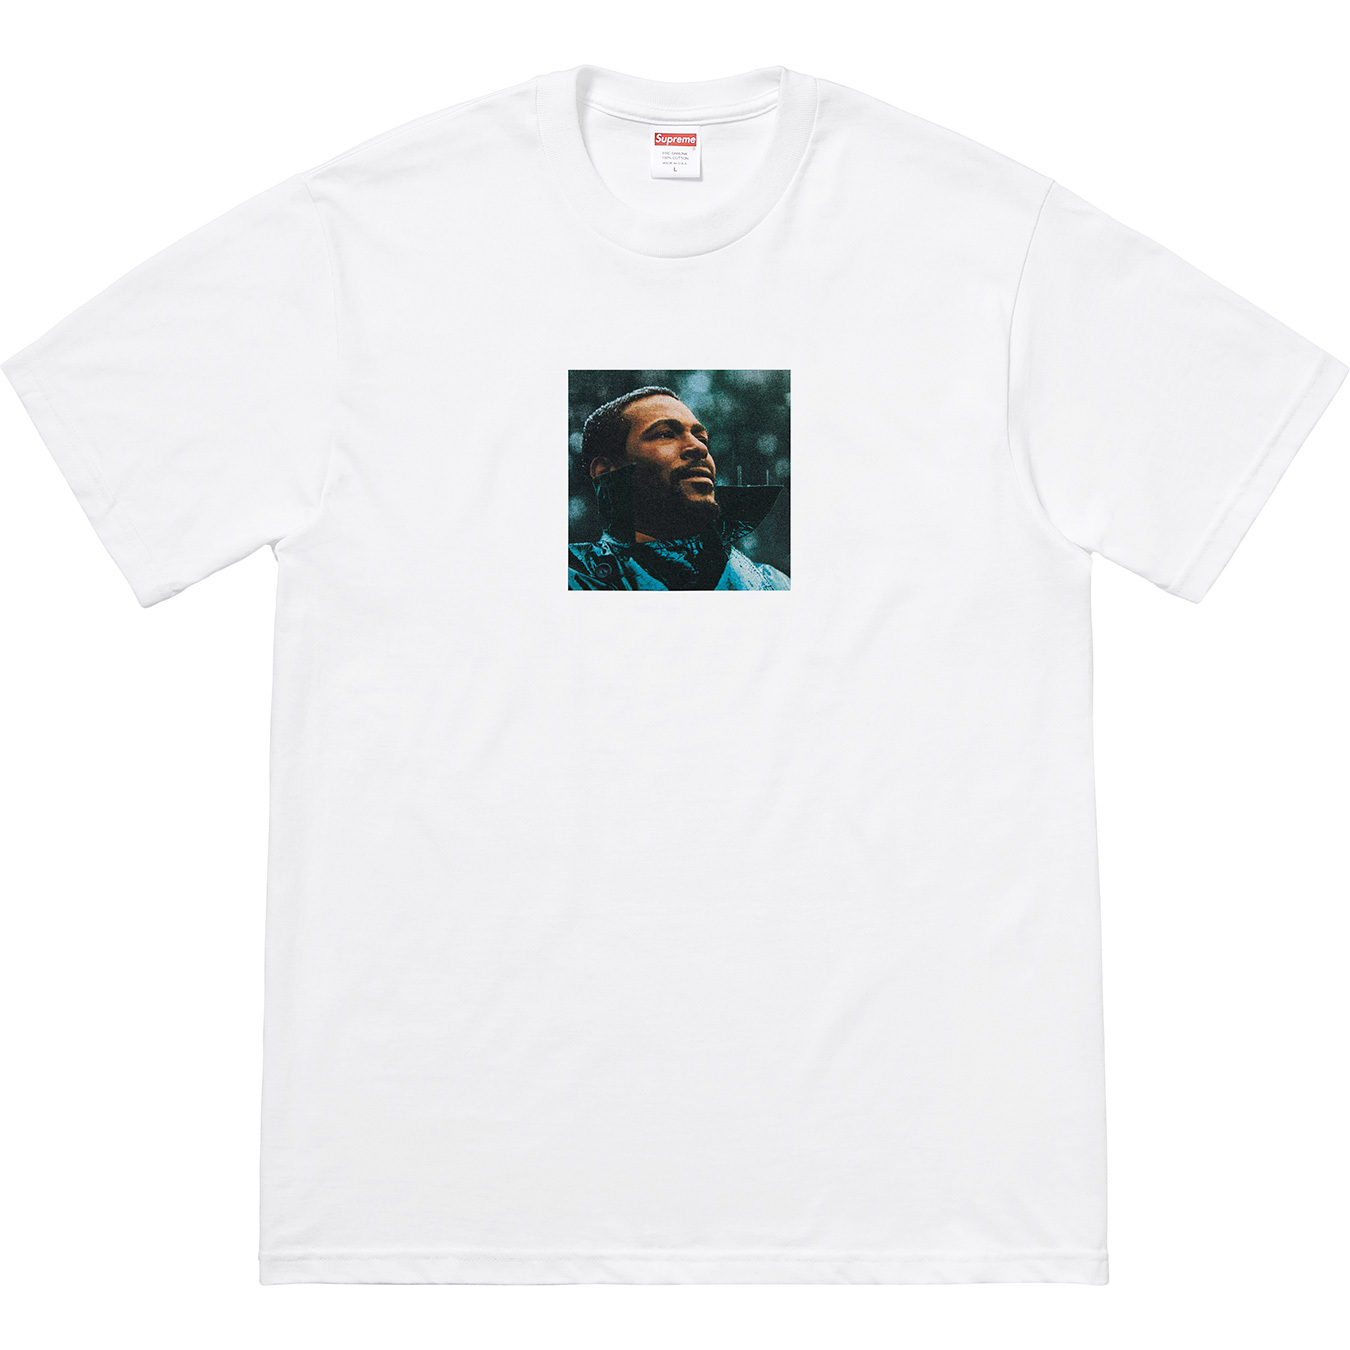 supreme-online-store-20181215-week17-release-items-marvin-gaye-tee